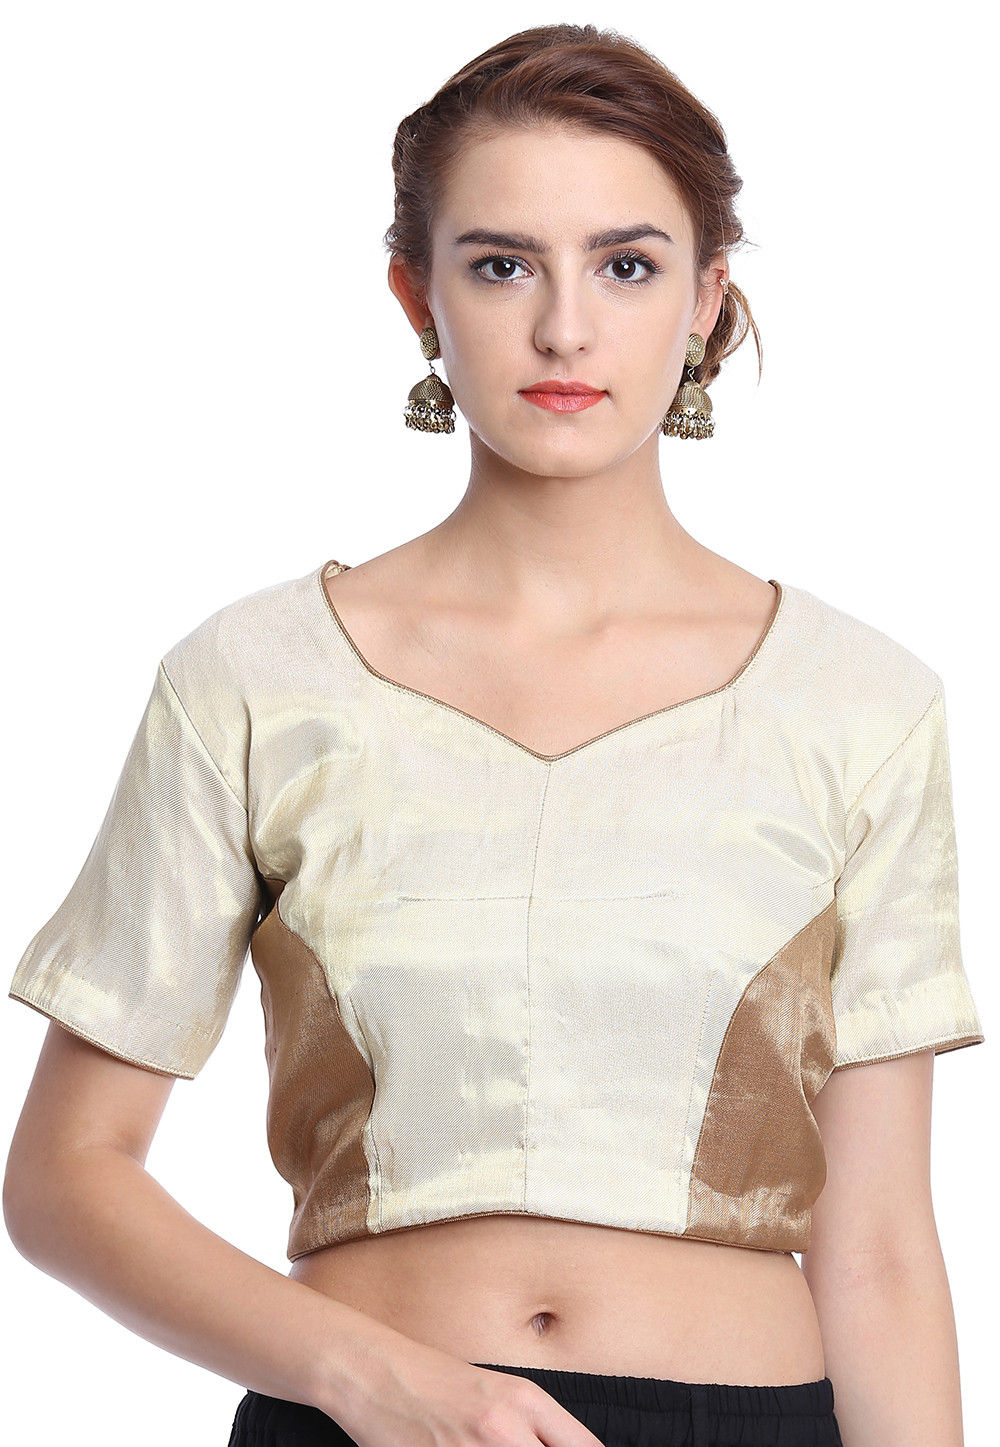 450dbd79fb96a Woven Brocade Blouse in Off White   UBD943